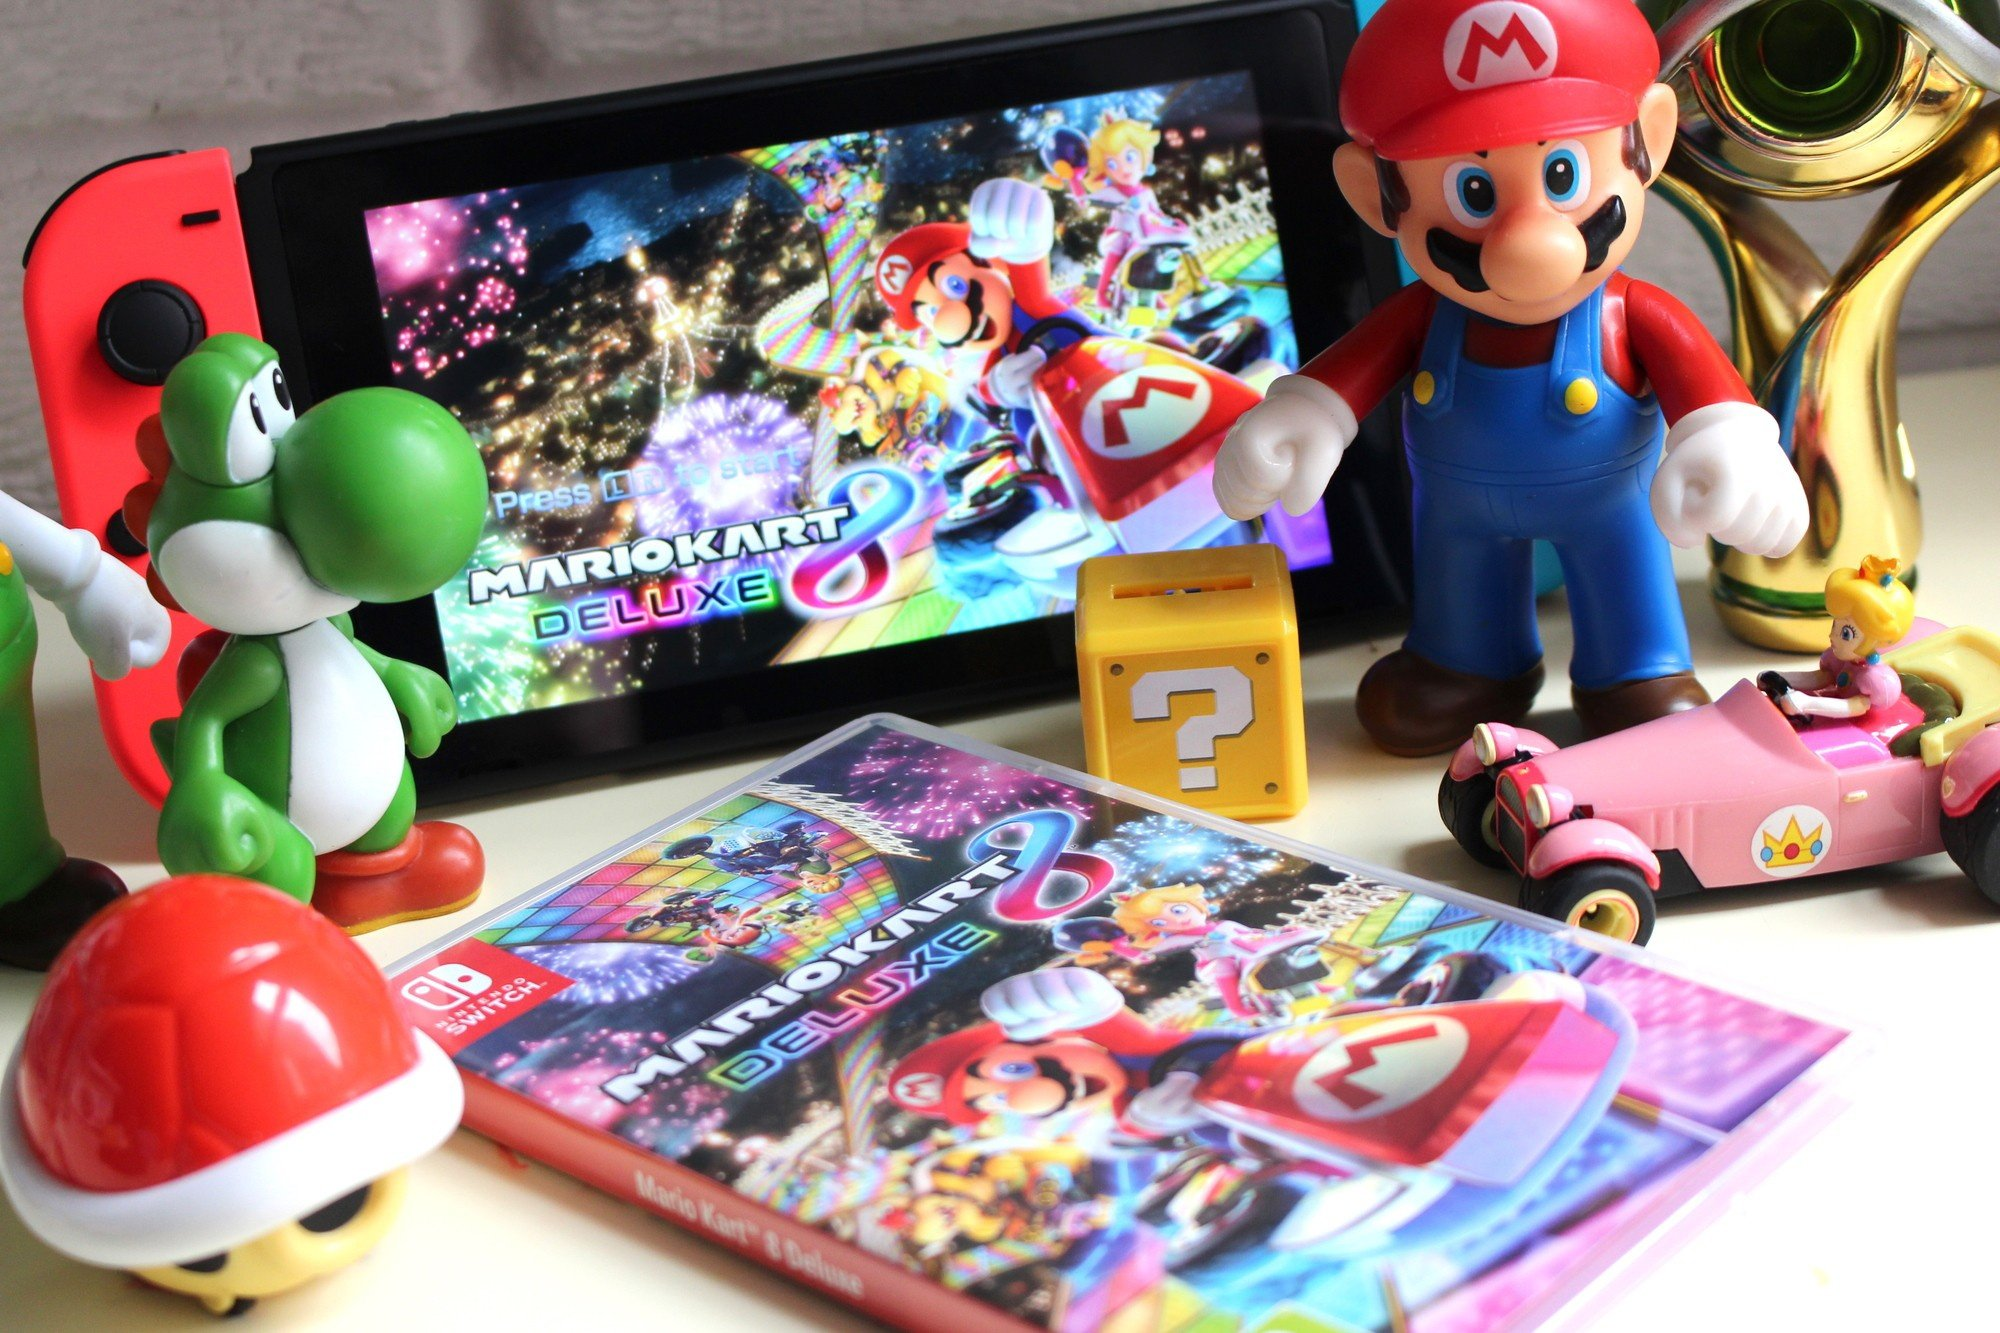 gallery here 39 s what mario kart 8 deluxe 39 s retail packaging looks like inside and out. Black Bedroom Furniture Sets. Home Design Ideas